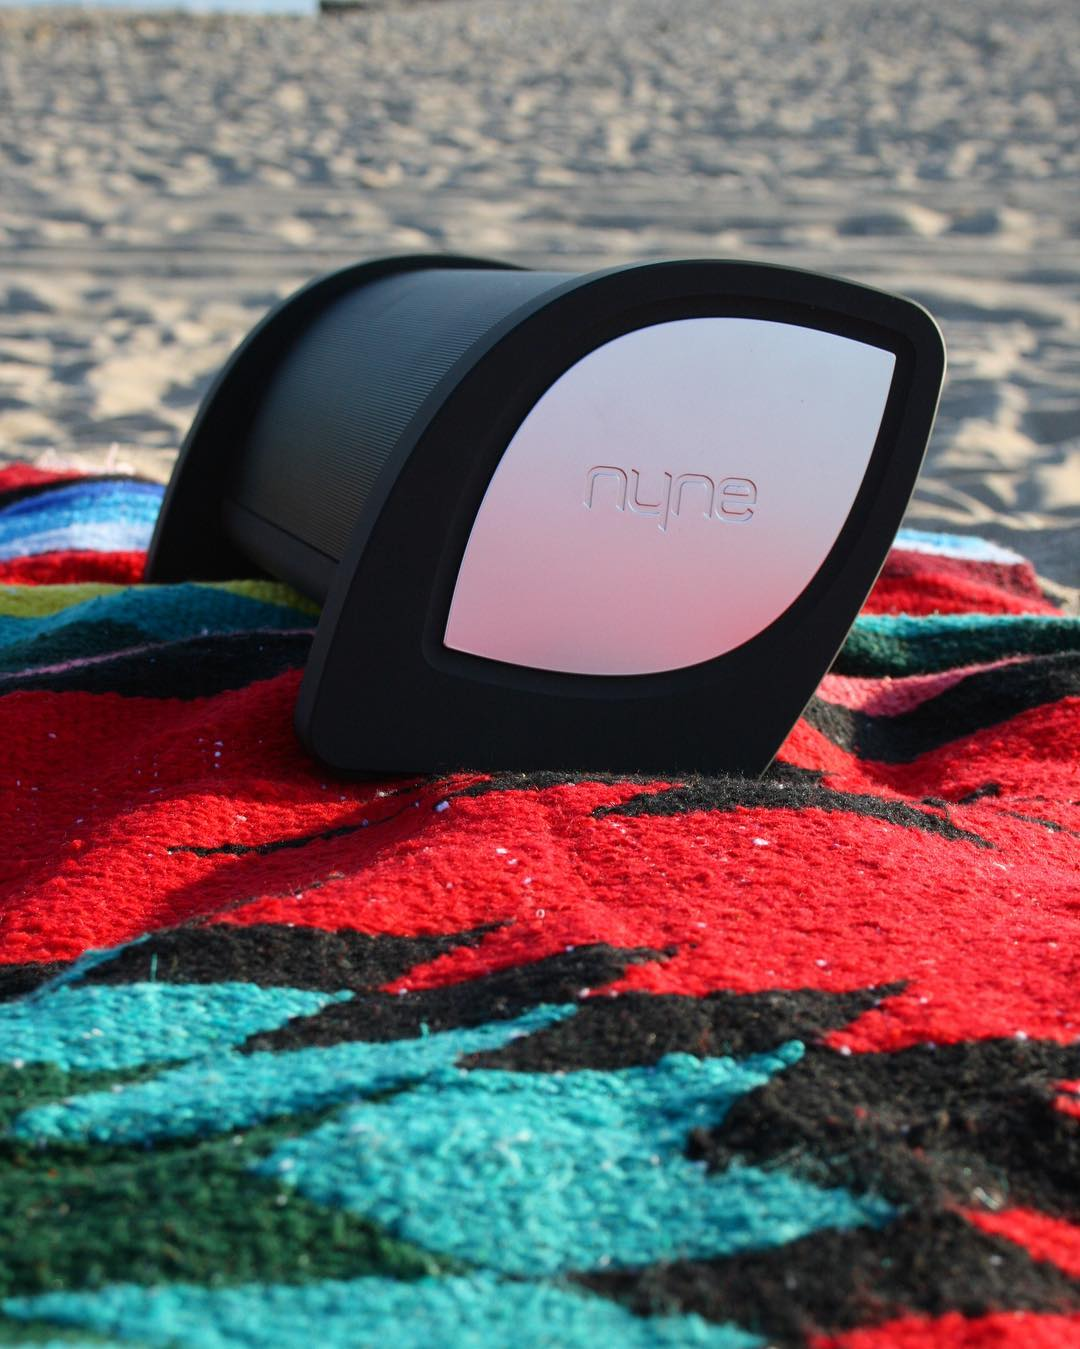 Attention all beach bums: don't get up - just turn it up. #NYNEbass #lifesoundsgood #summer #beachbum #bluetoothaudio #beachday #summermusic